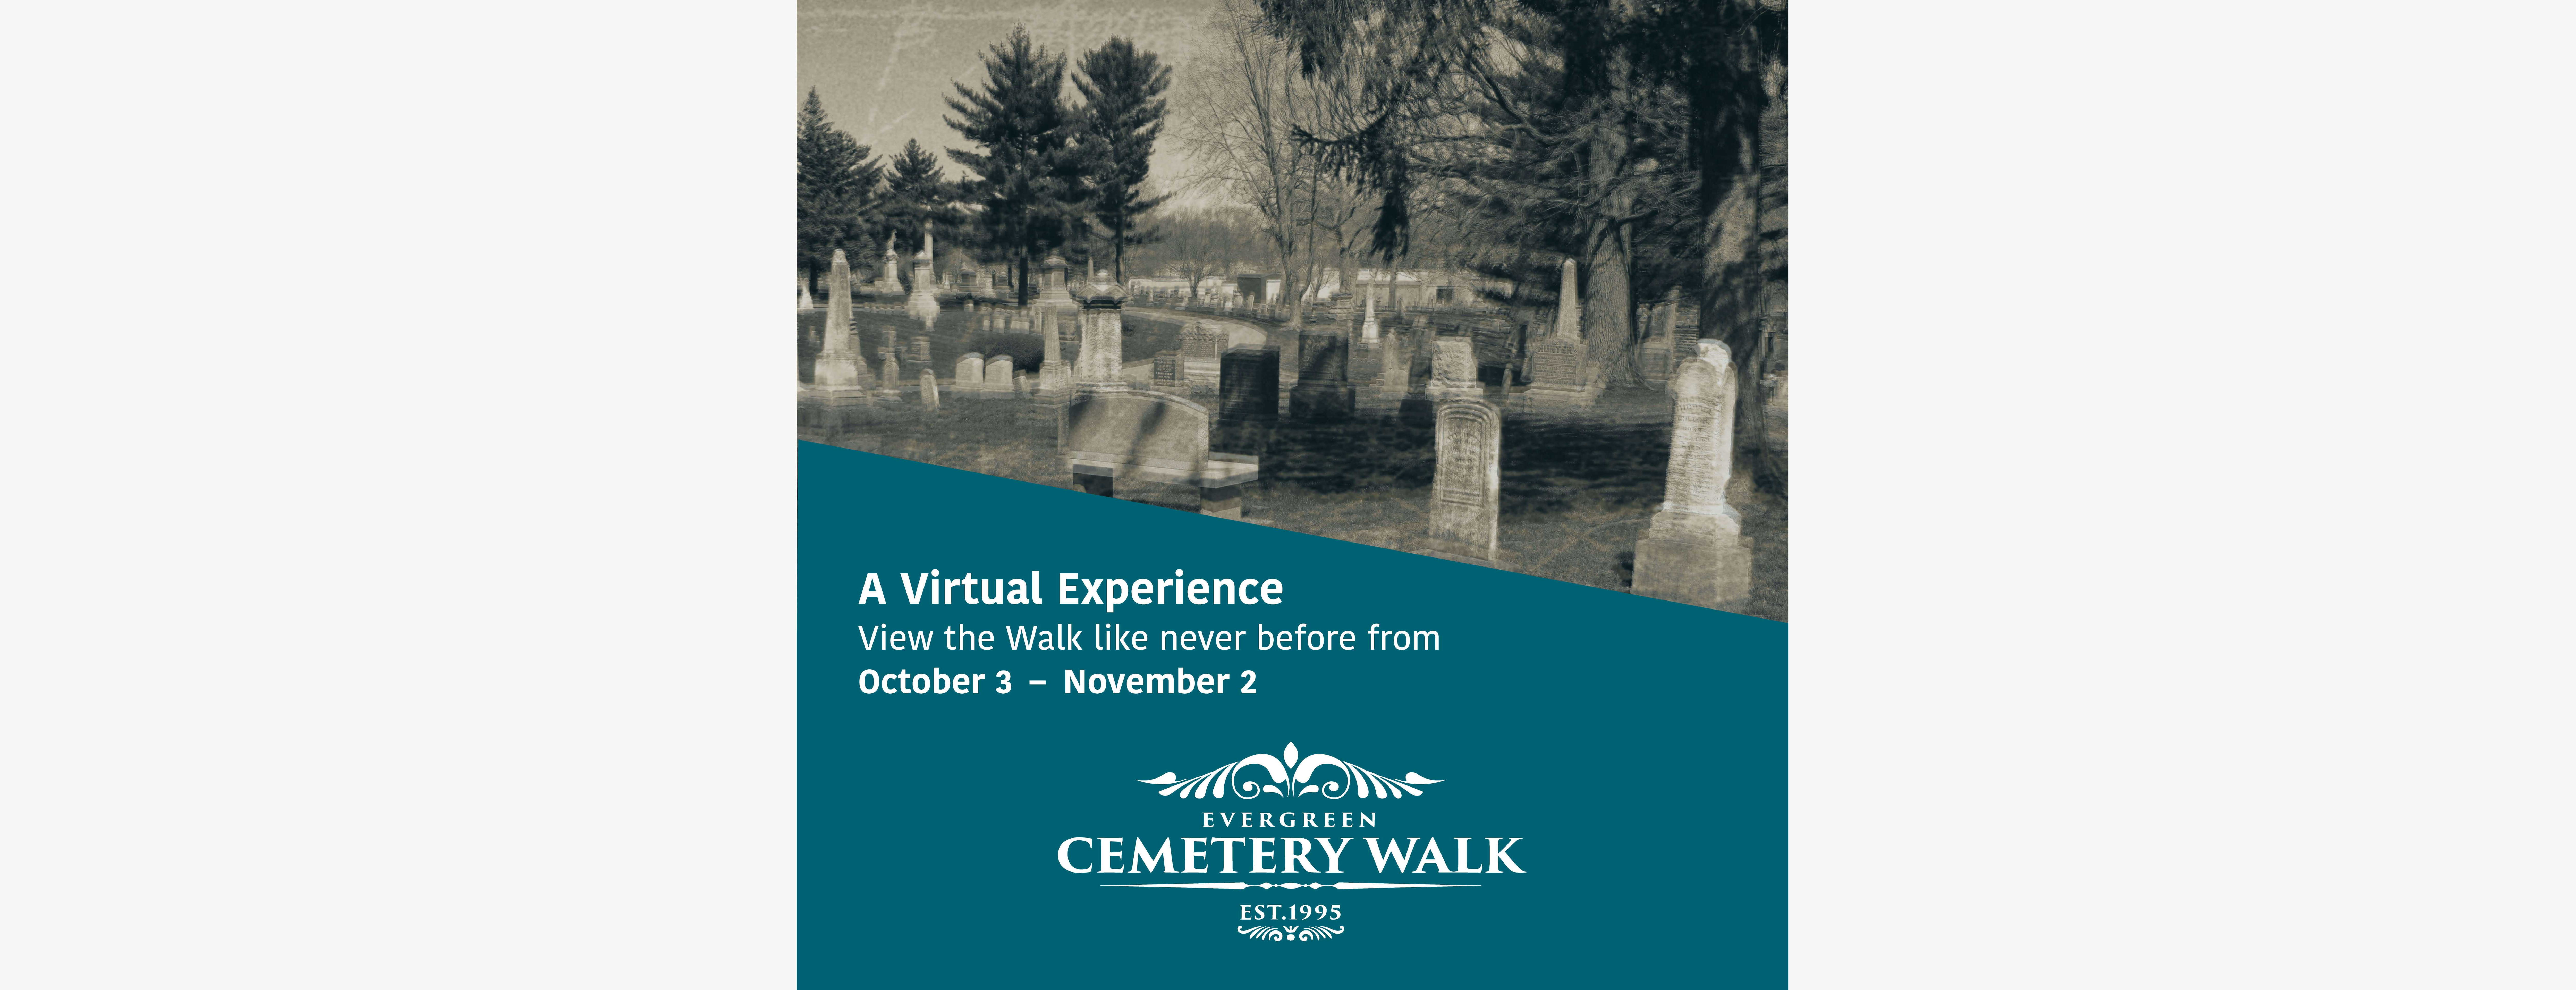 Evergreen Cemetery Walk logo